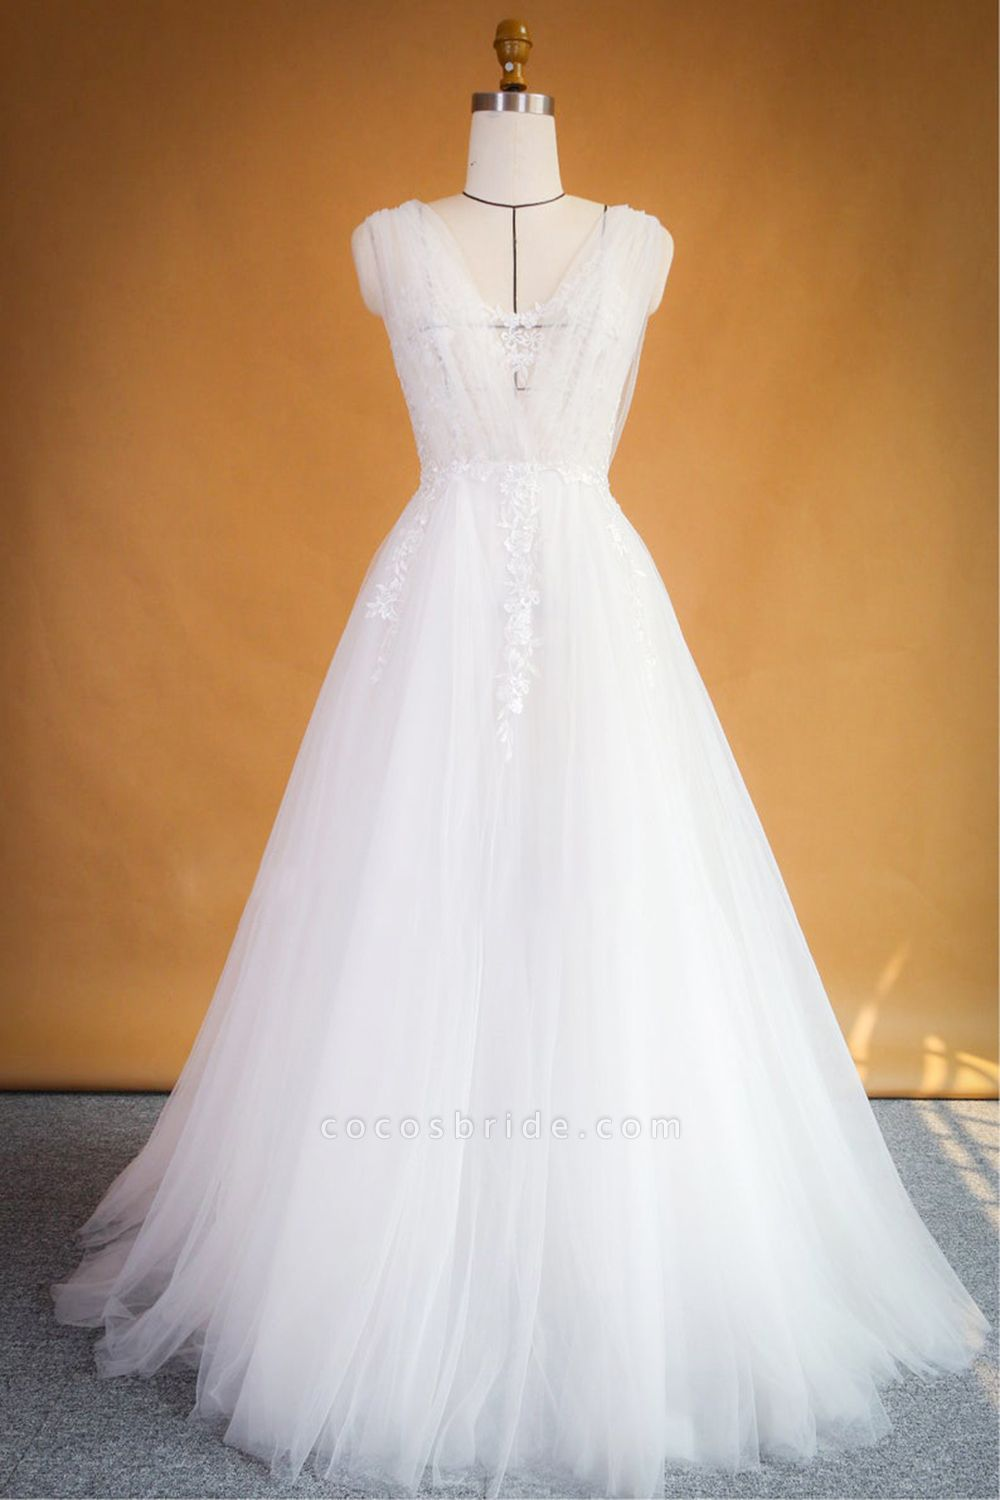 Ruffle Applqiues Tulle A-line Wedding Dress